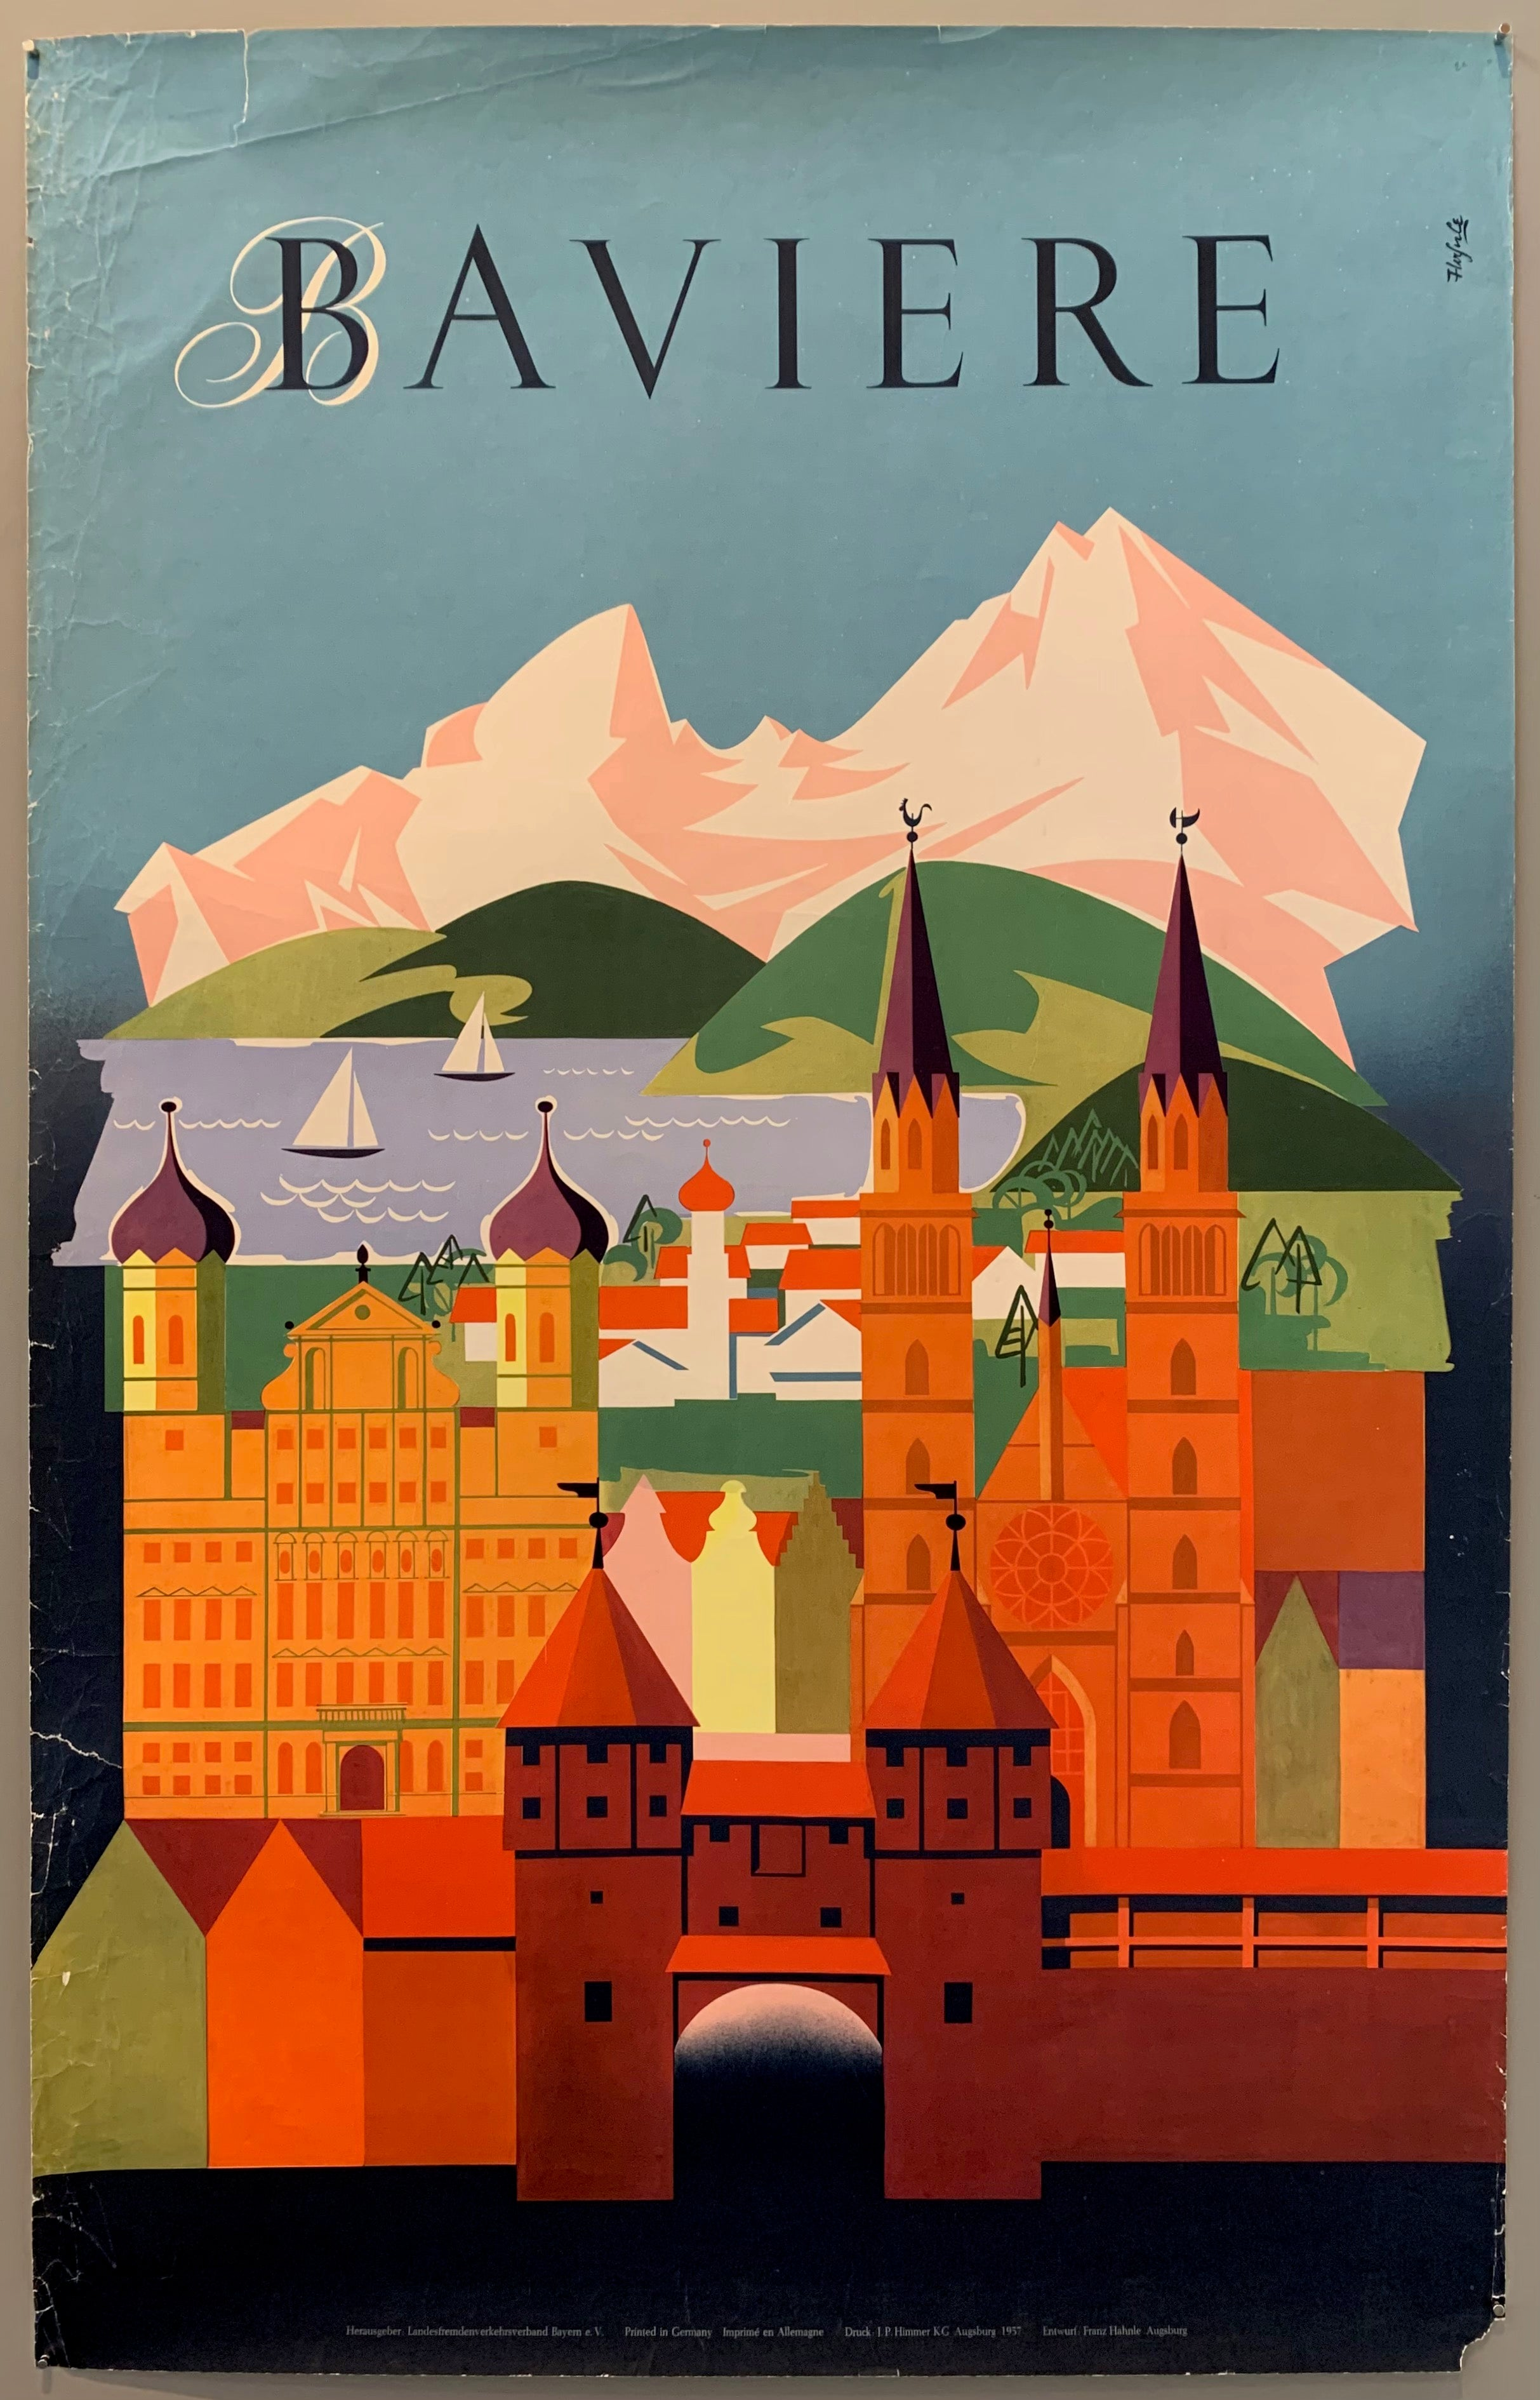 Original German tourist poster for holiday pleasures in Bavaria. Poster shows a Bavarian town setting with alps in the background.  Bavaria has a unique culture, largely because of the state's Catholic majority and conservative traditions. Bavarians have traditionally been proud of their culture, which includes an own language, cuisine, architecture, festivals such as the famous Oktober Beerfest and elements of Alpine symbolism.